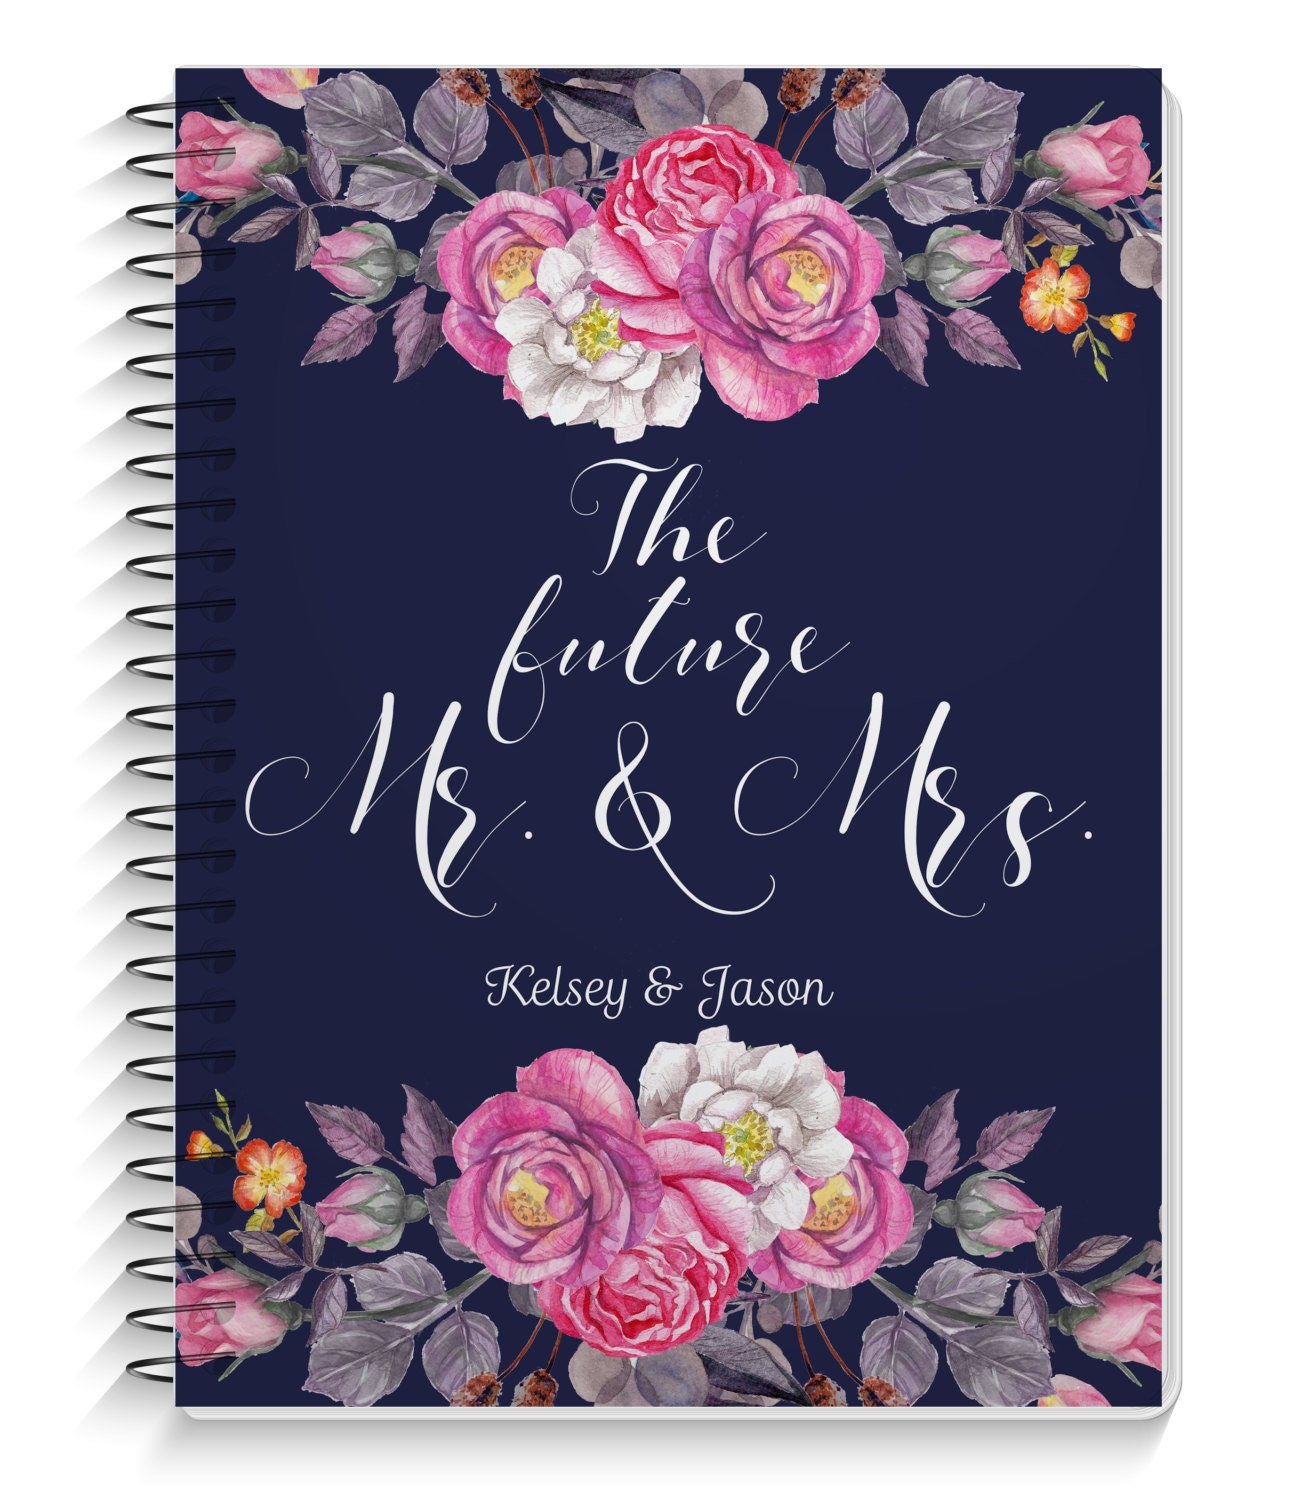 Wedding Planner Wedding Planning Book Personalized Cover